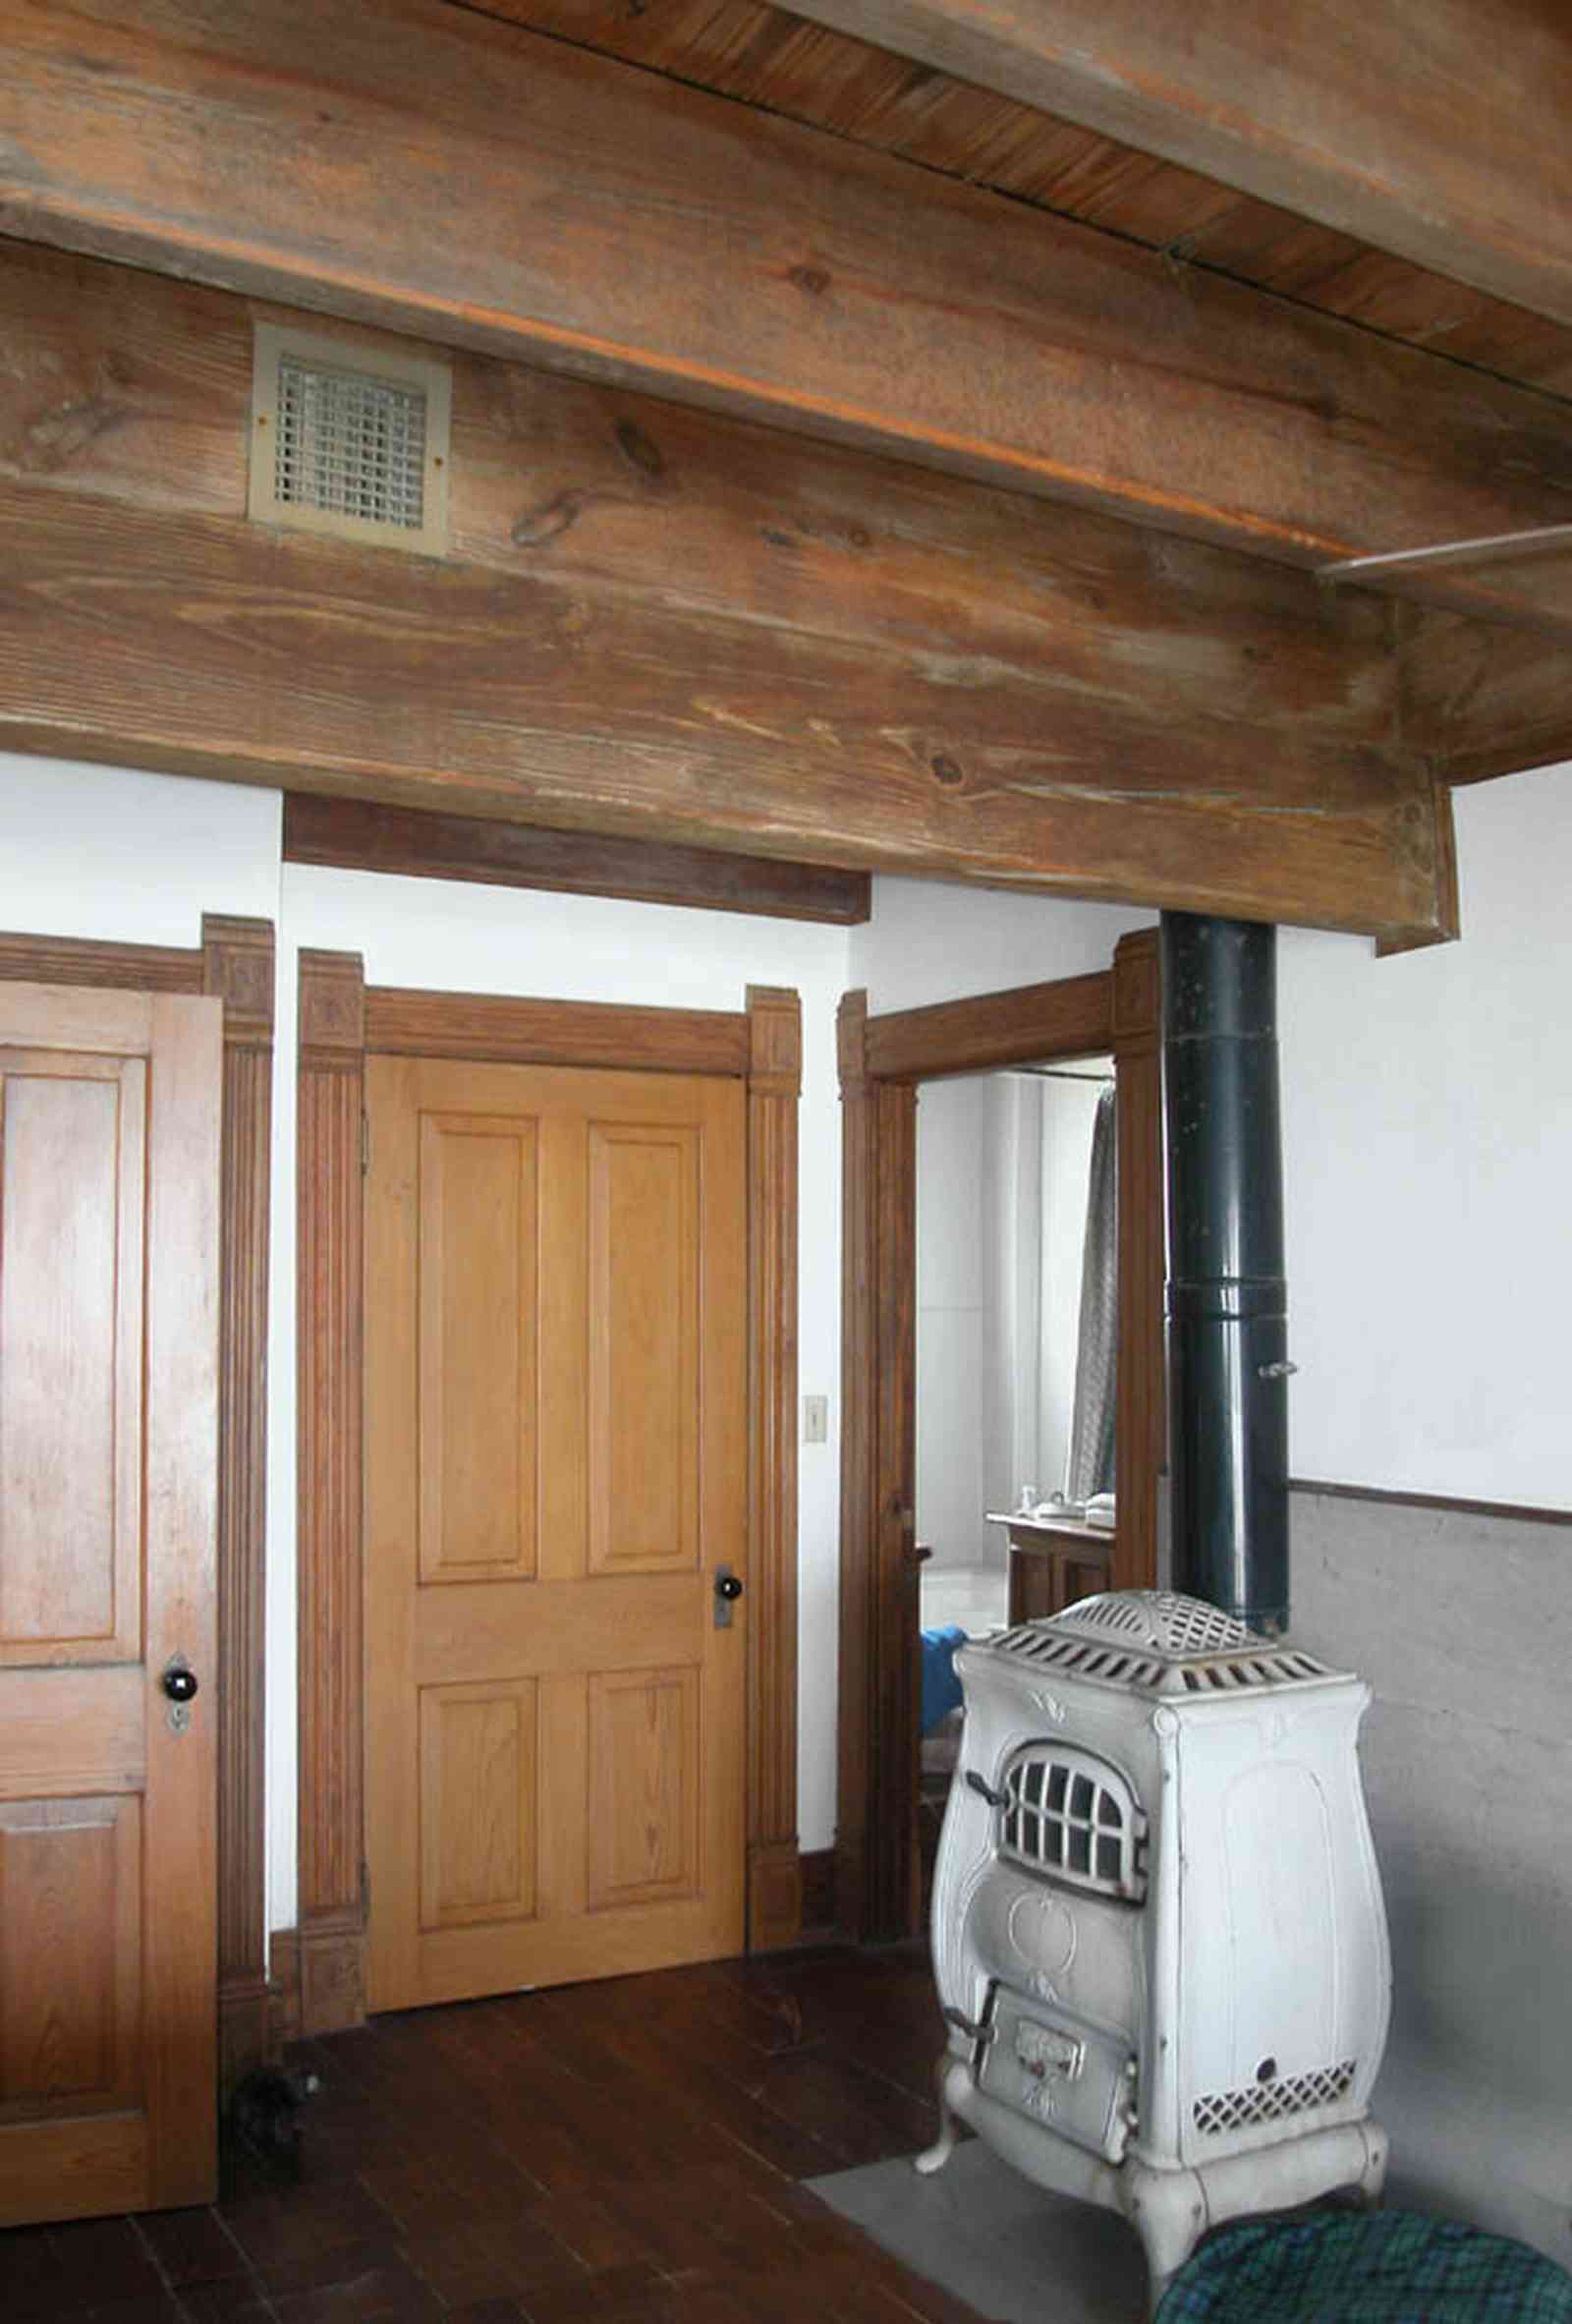 Perdido-Key:-Gothic-House_08p.jpg:  potbelly stove, heartpine lumber, bedroom, ceiling beams, marble facing